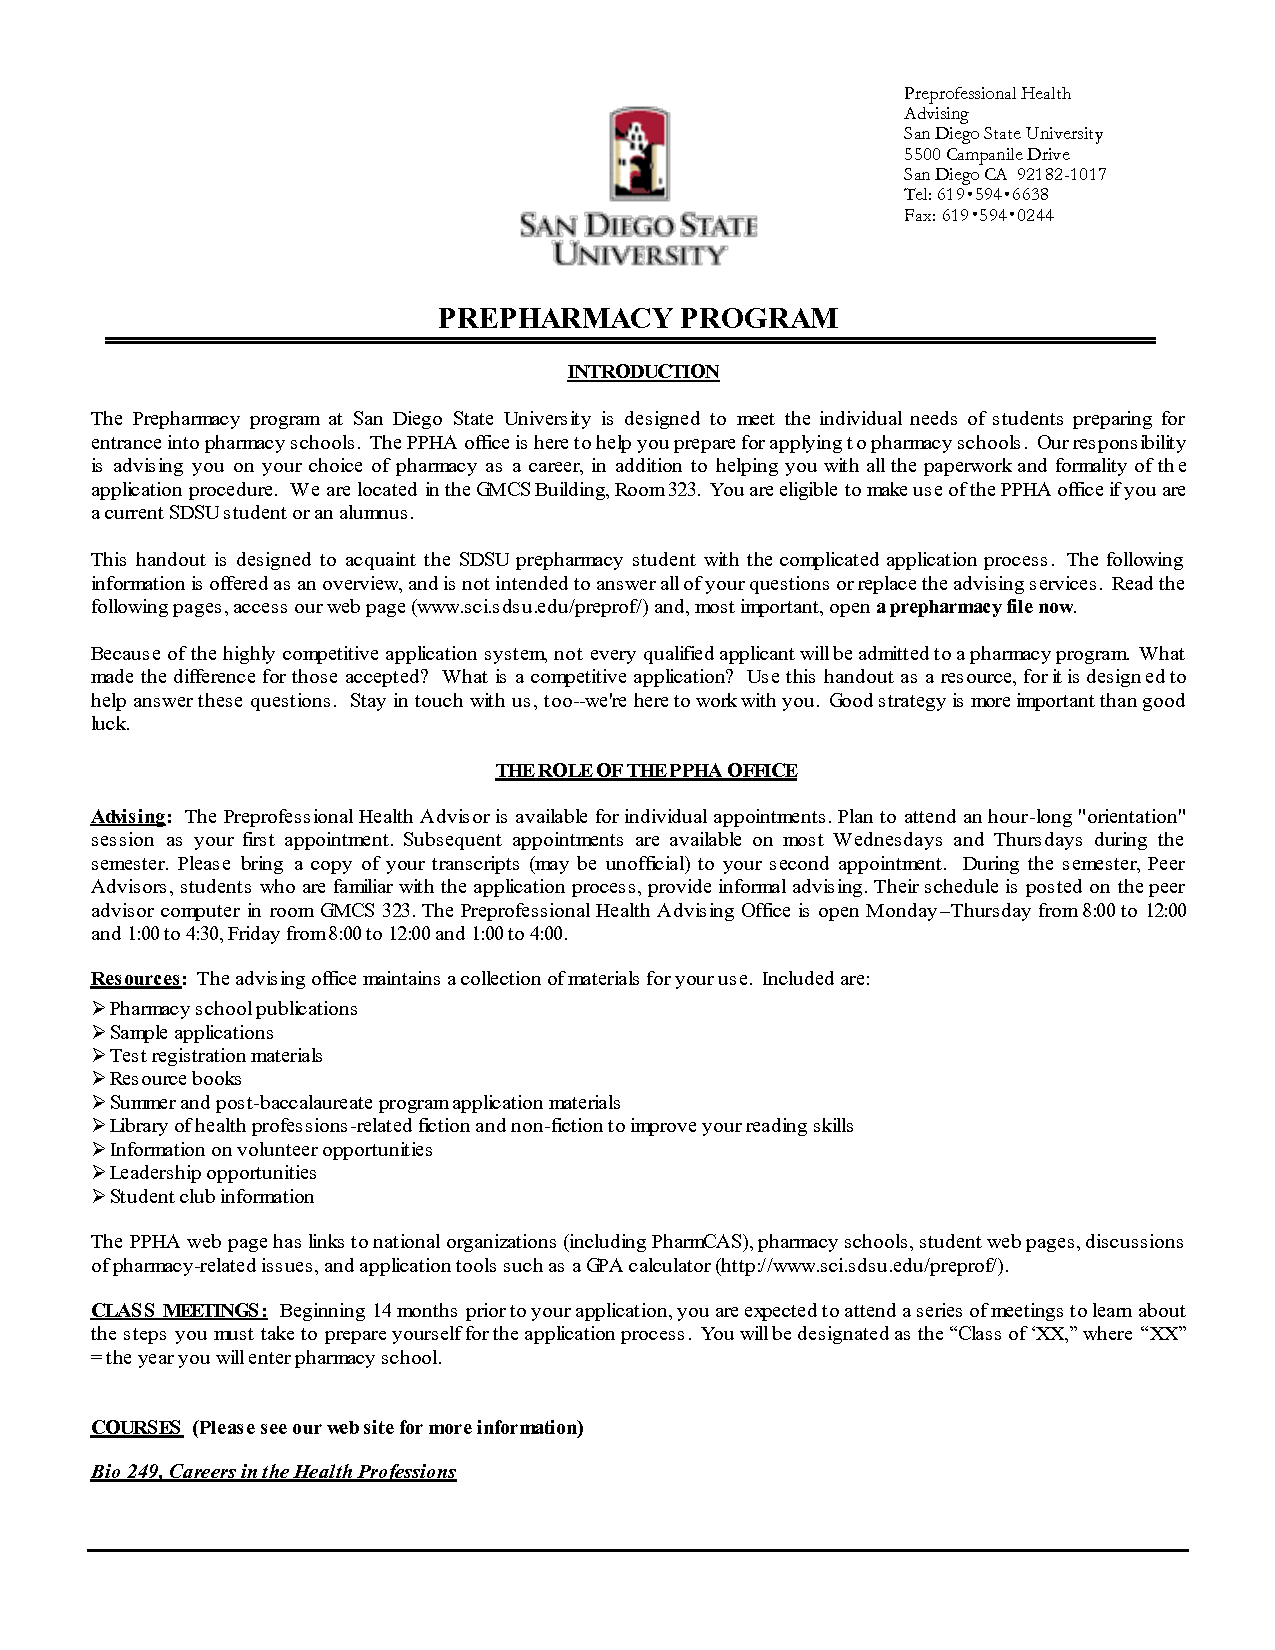 Letter Of Recommendation for College Admission Template - Pharmacy School Essay Pharmacy School Essay Ideas for Othello